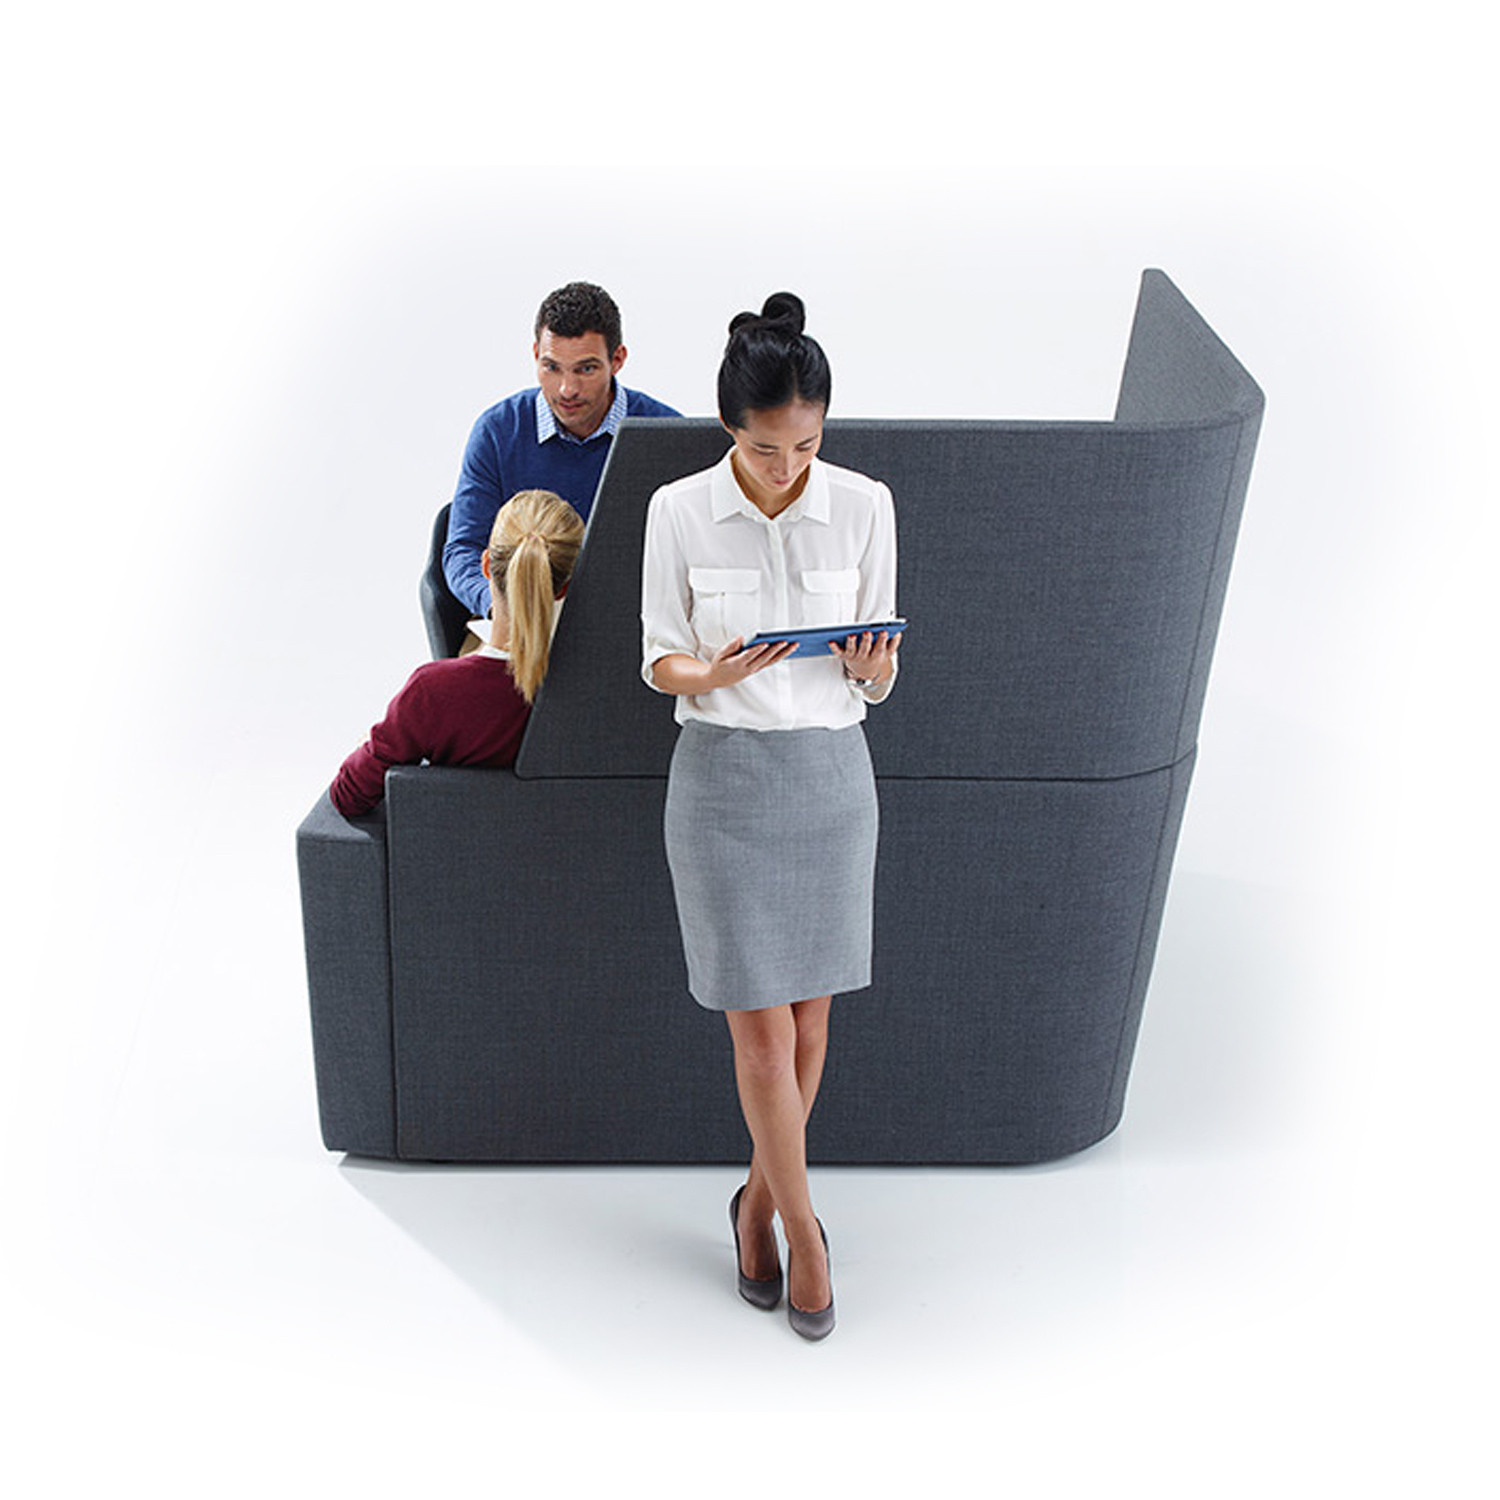 Soft Seating Spaces for Smartworking